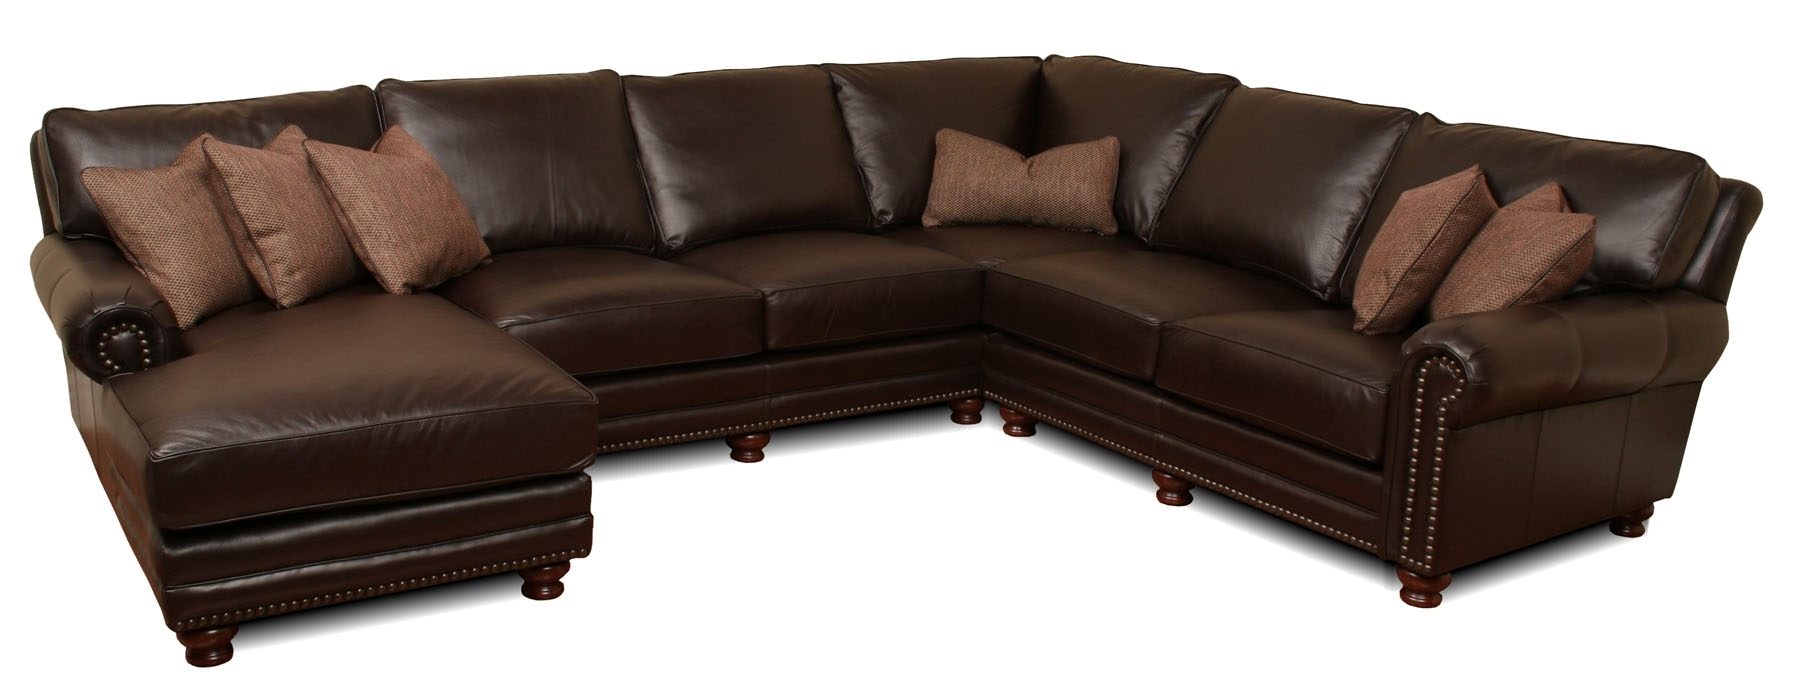 Kingston - Deep Leather Sectional | Leather Creations Furniture throughout Kingston Sectional Sofas (Image 2 of 10)